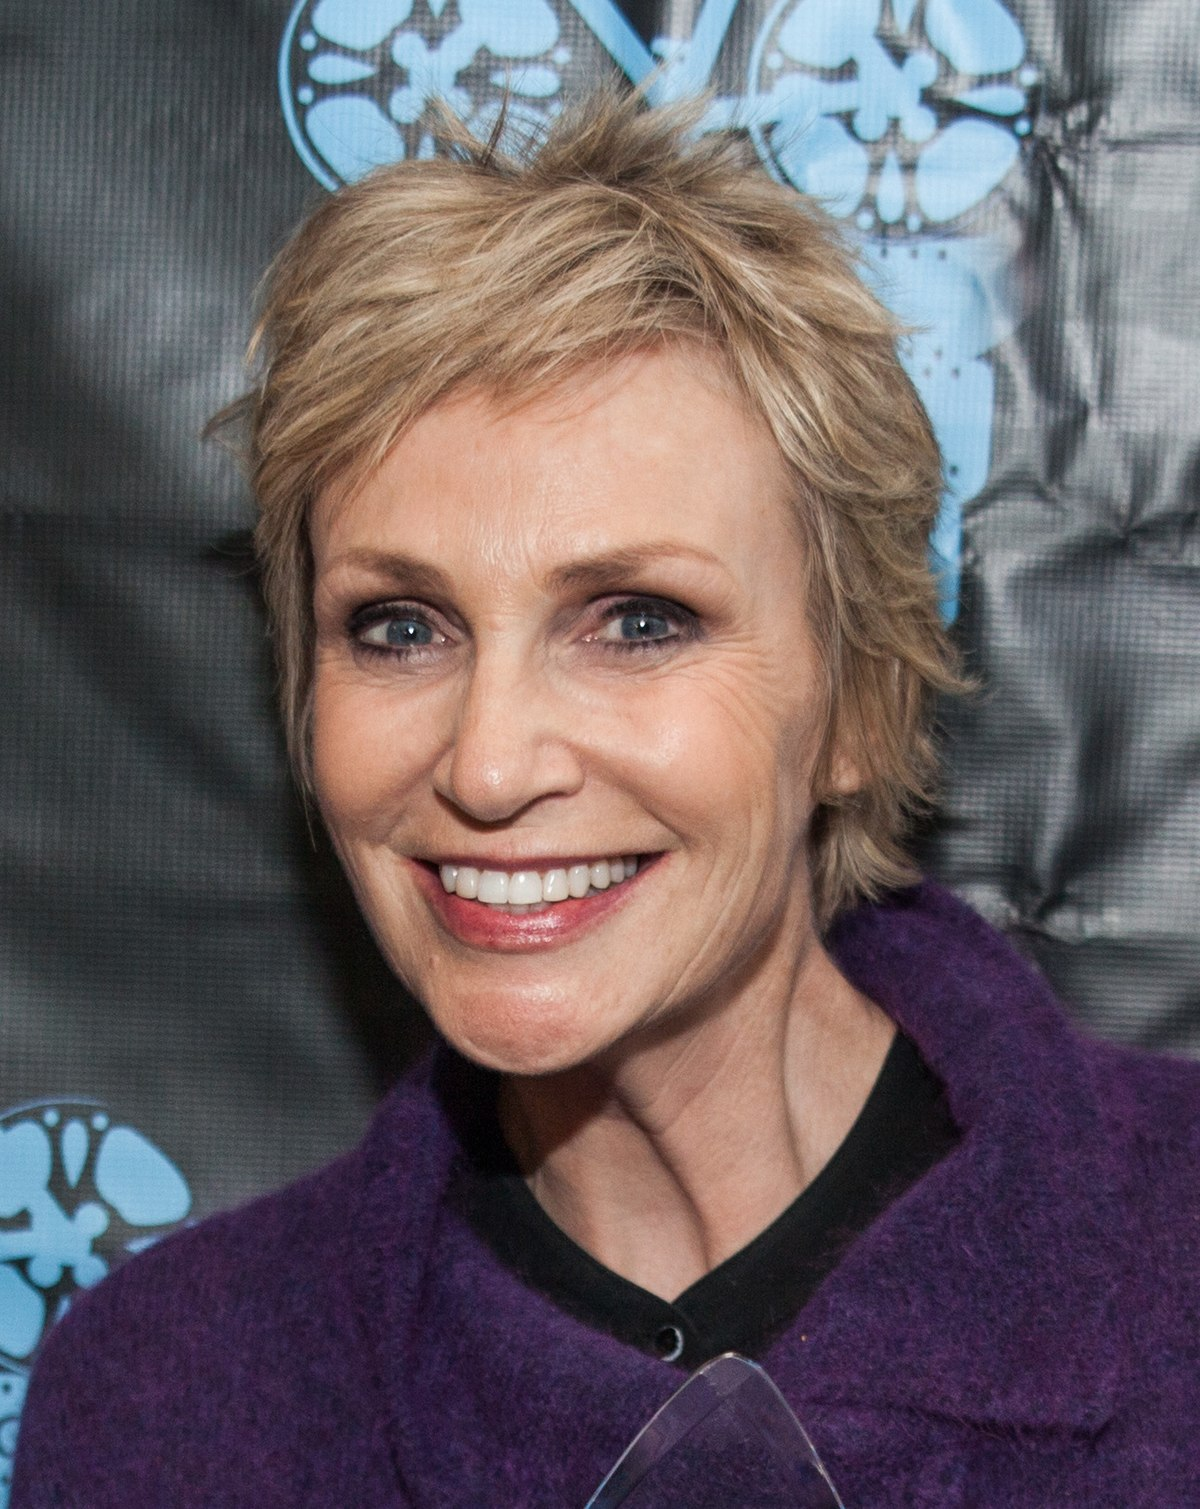 picture Jane Lynch